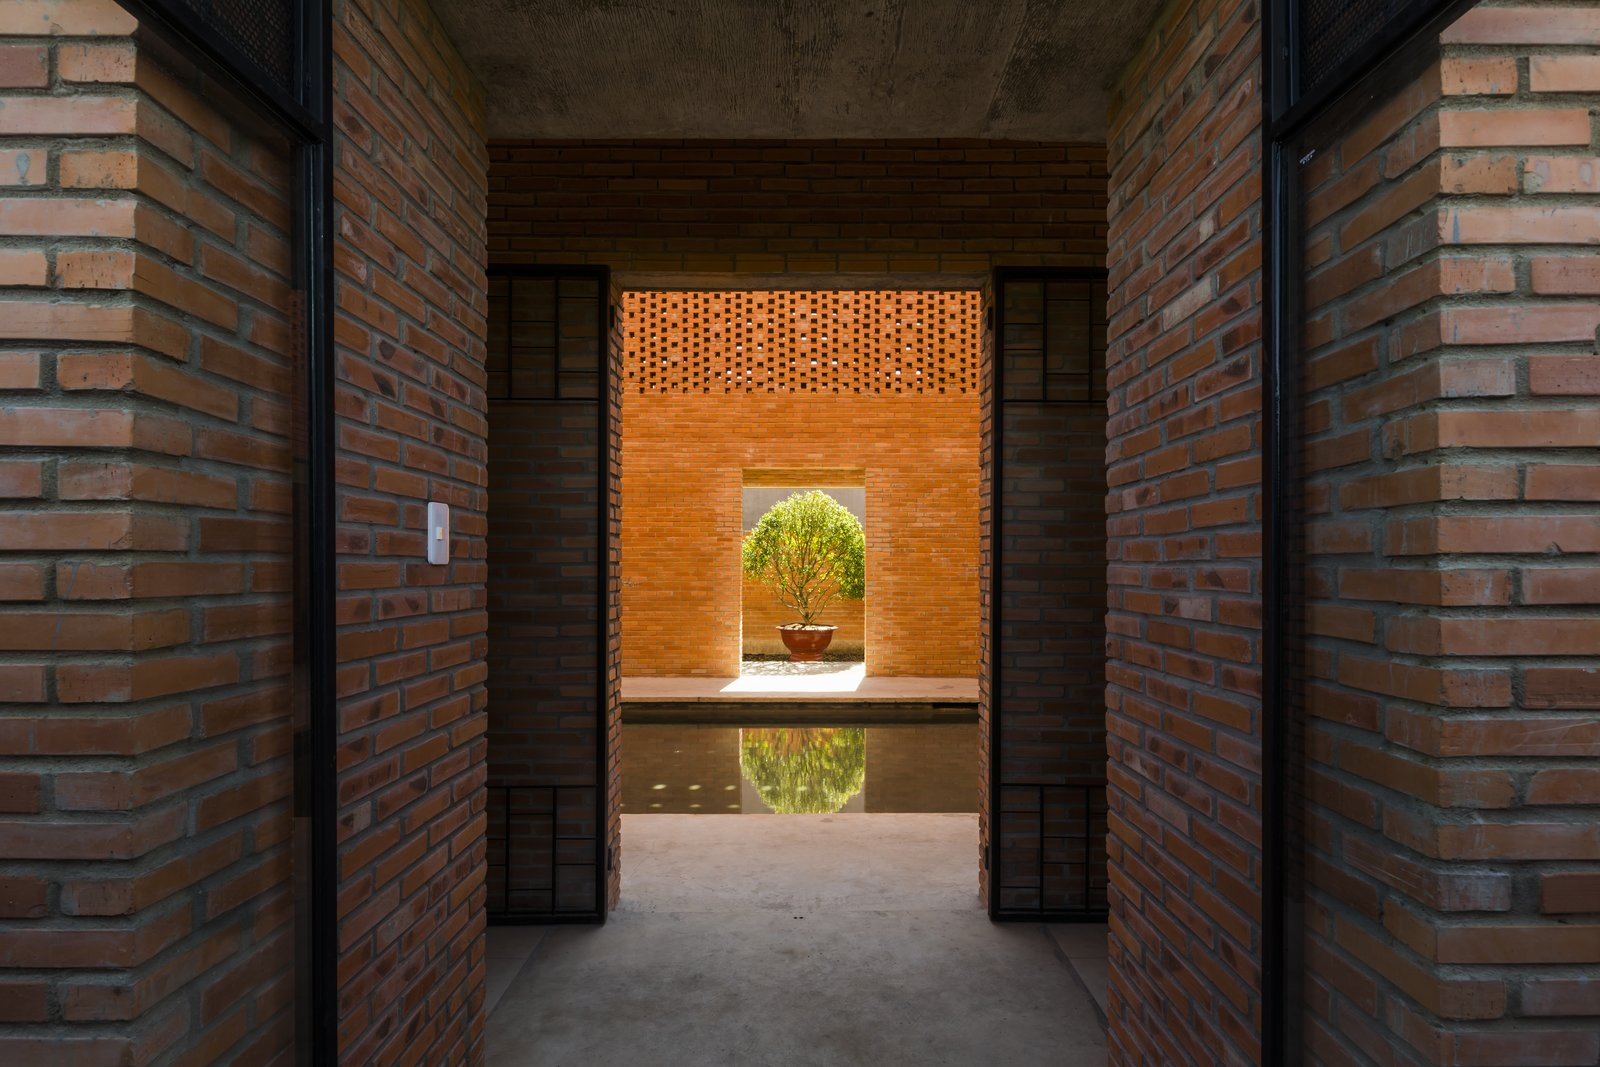 Water features, which convey the balance that the philosophy of Ying and Yang calls for, is expressed in a pond-like pool in the middle of the house.